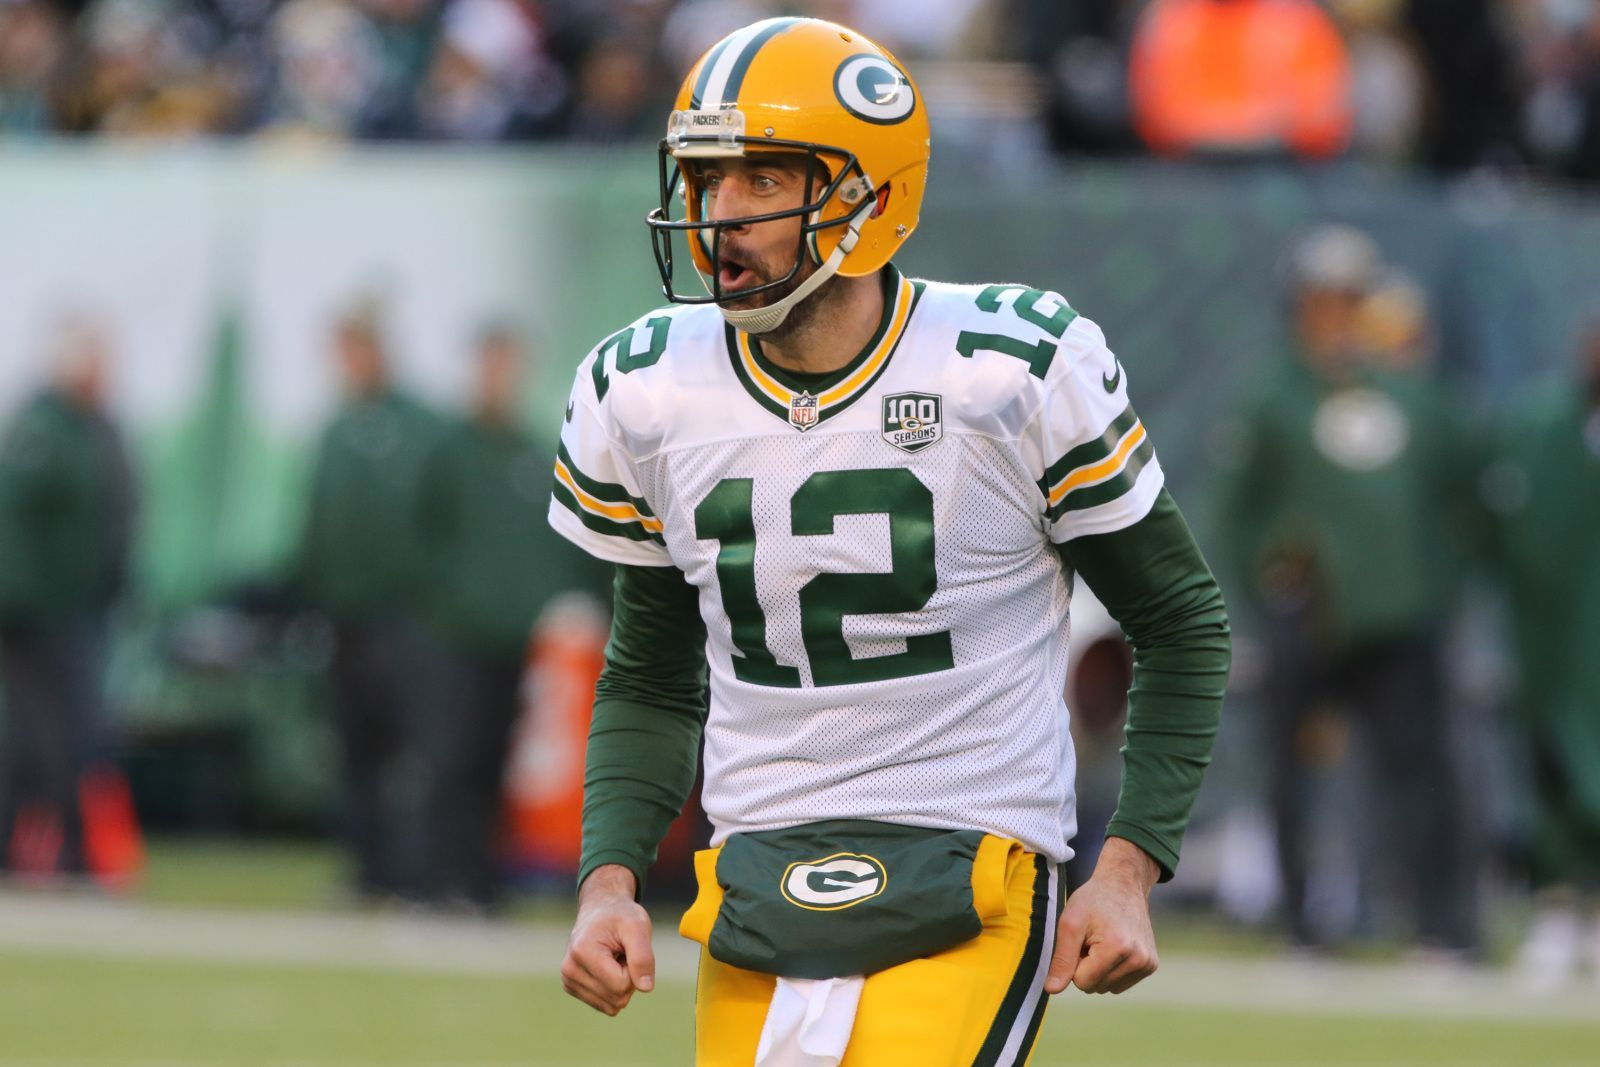 2019 Nfl Draft Green Bay Packers 7 Round Mock Fansided Super Bowl L Nfl Draft Super Bowl Weekend